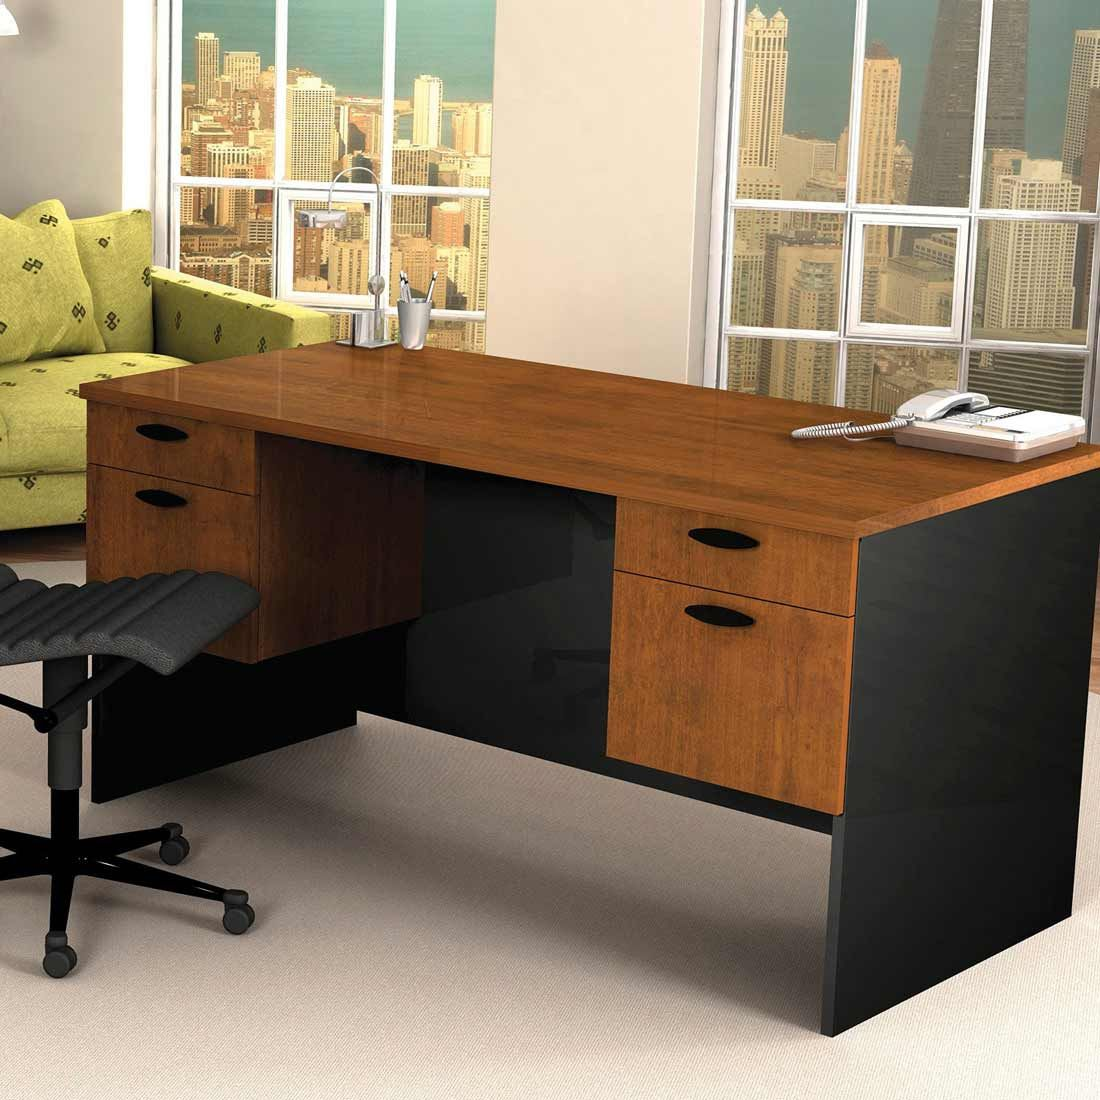 Affordable Office Desks   Best Home Office Furniture Check More At  Http://michael